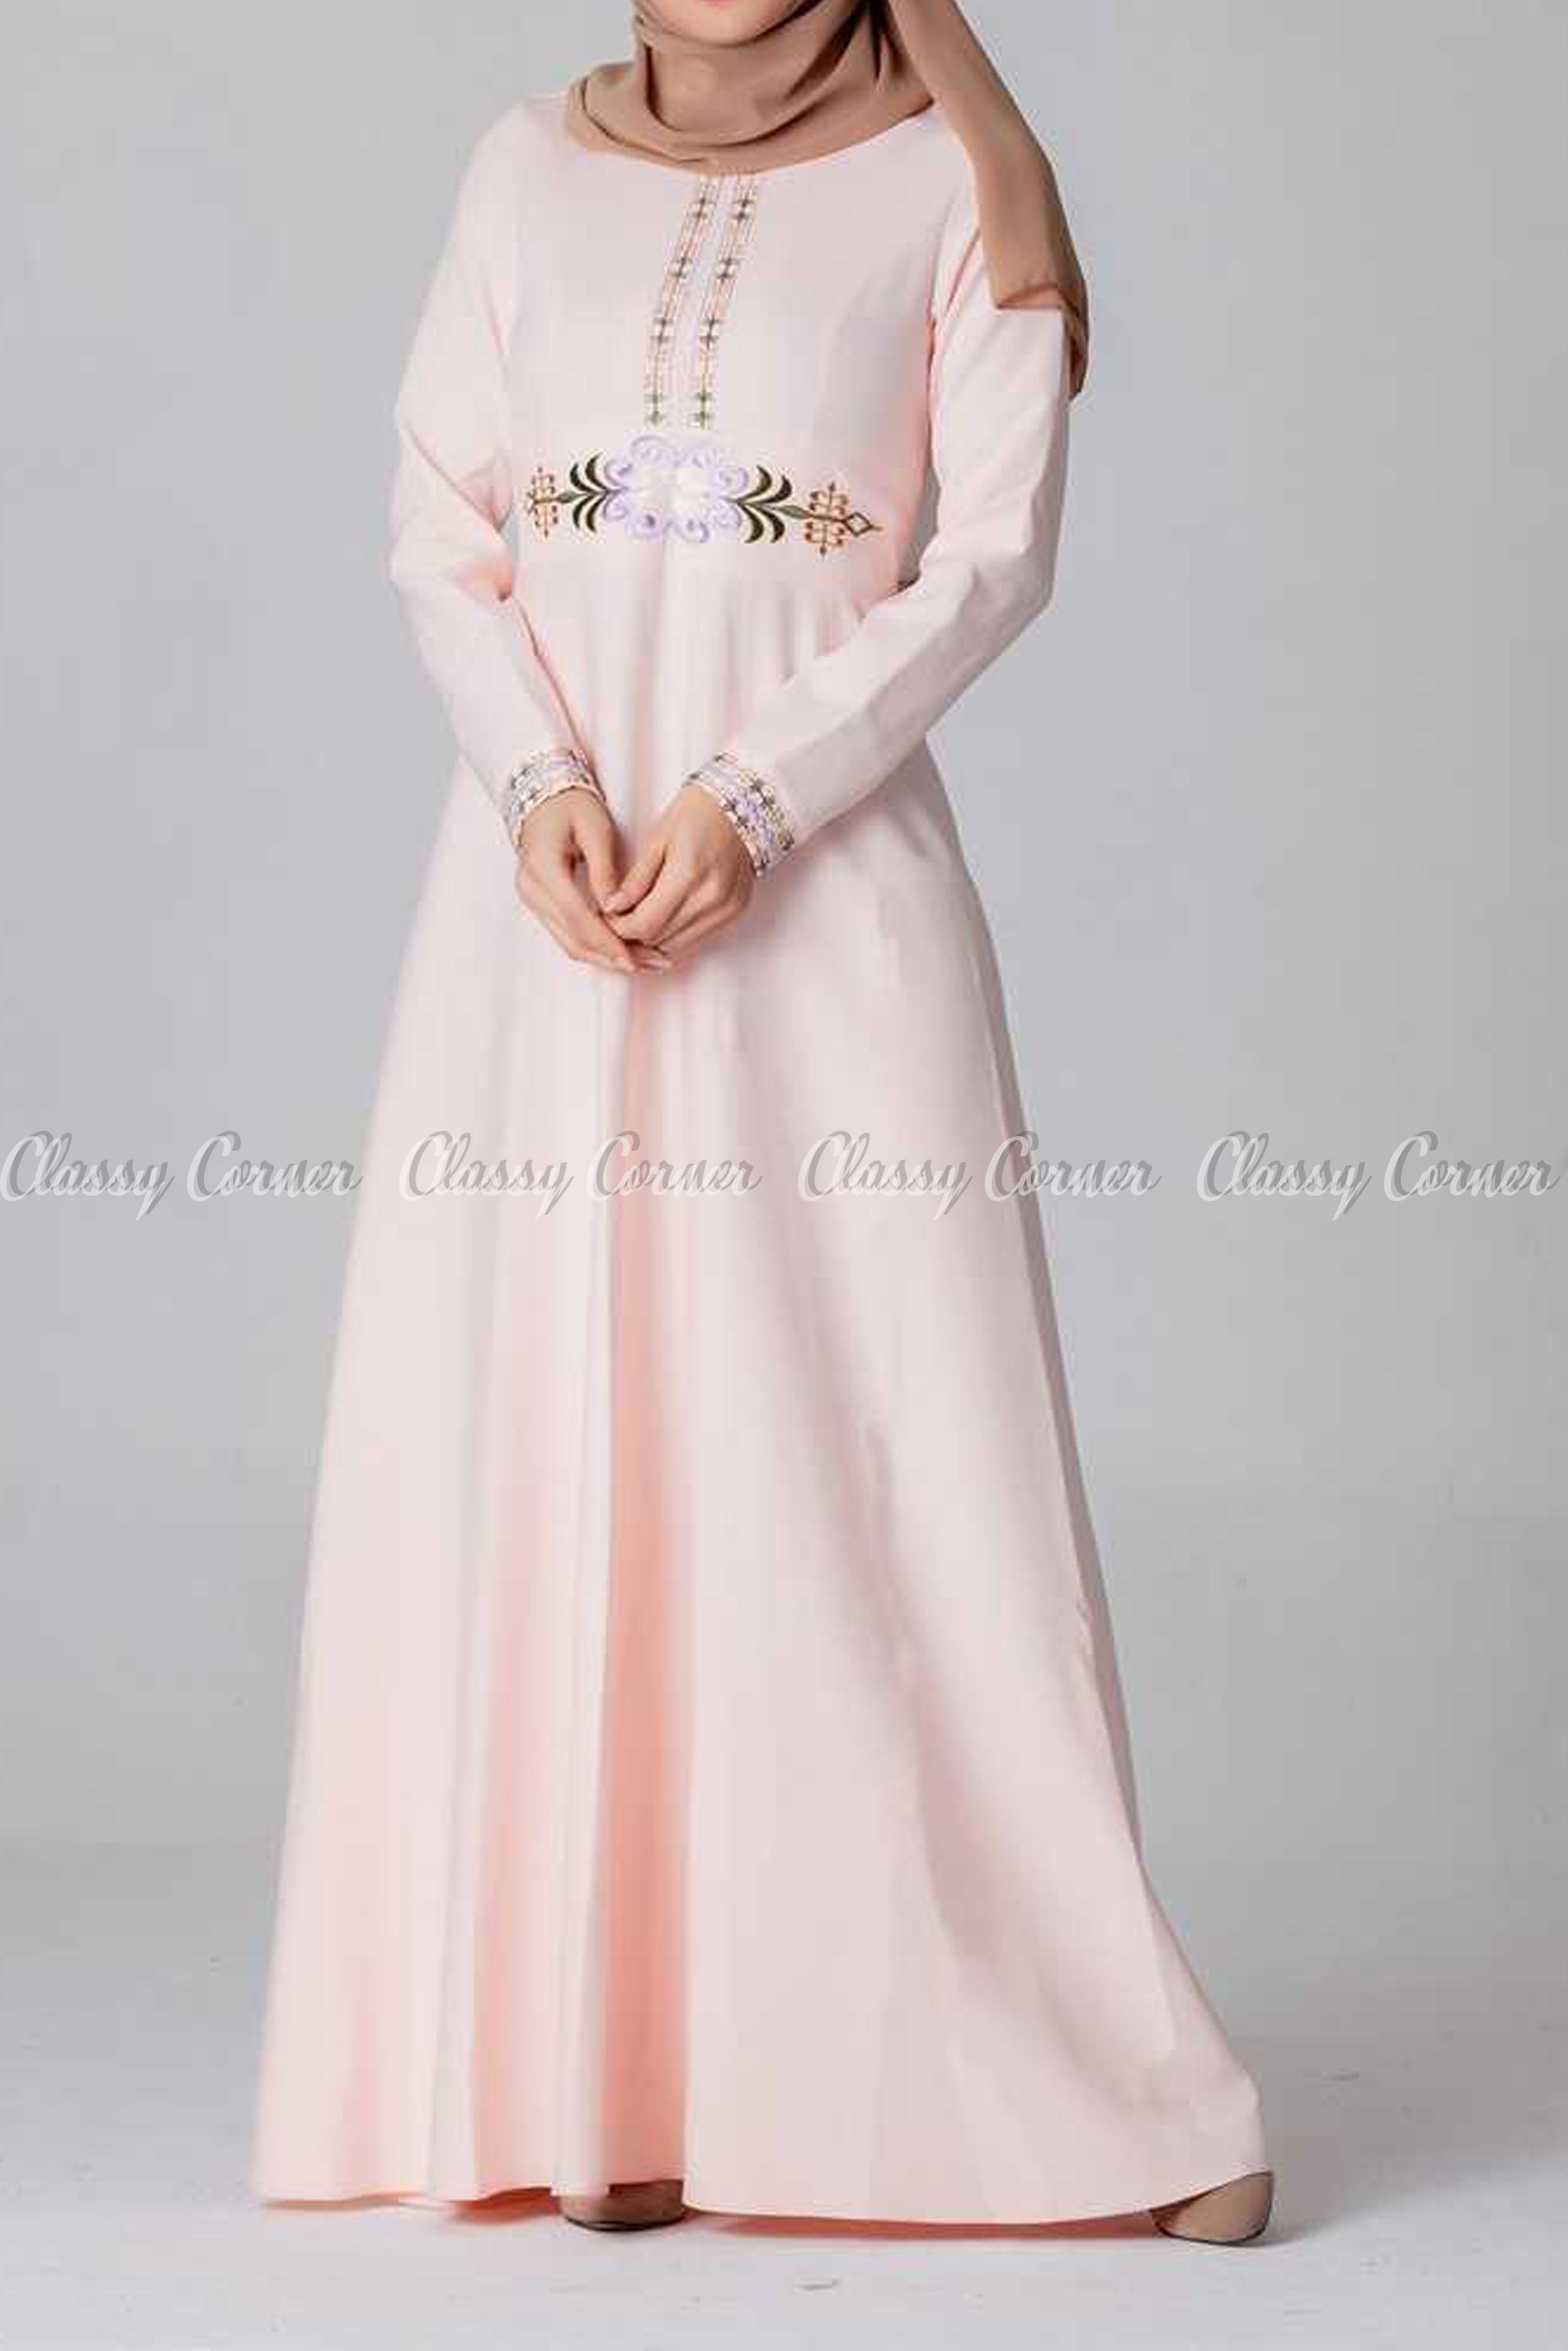 Elegant Embroidery Design Pink Modest Long Dress